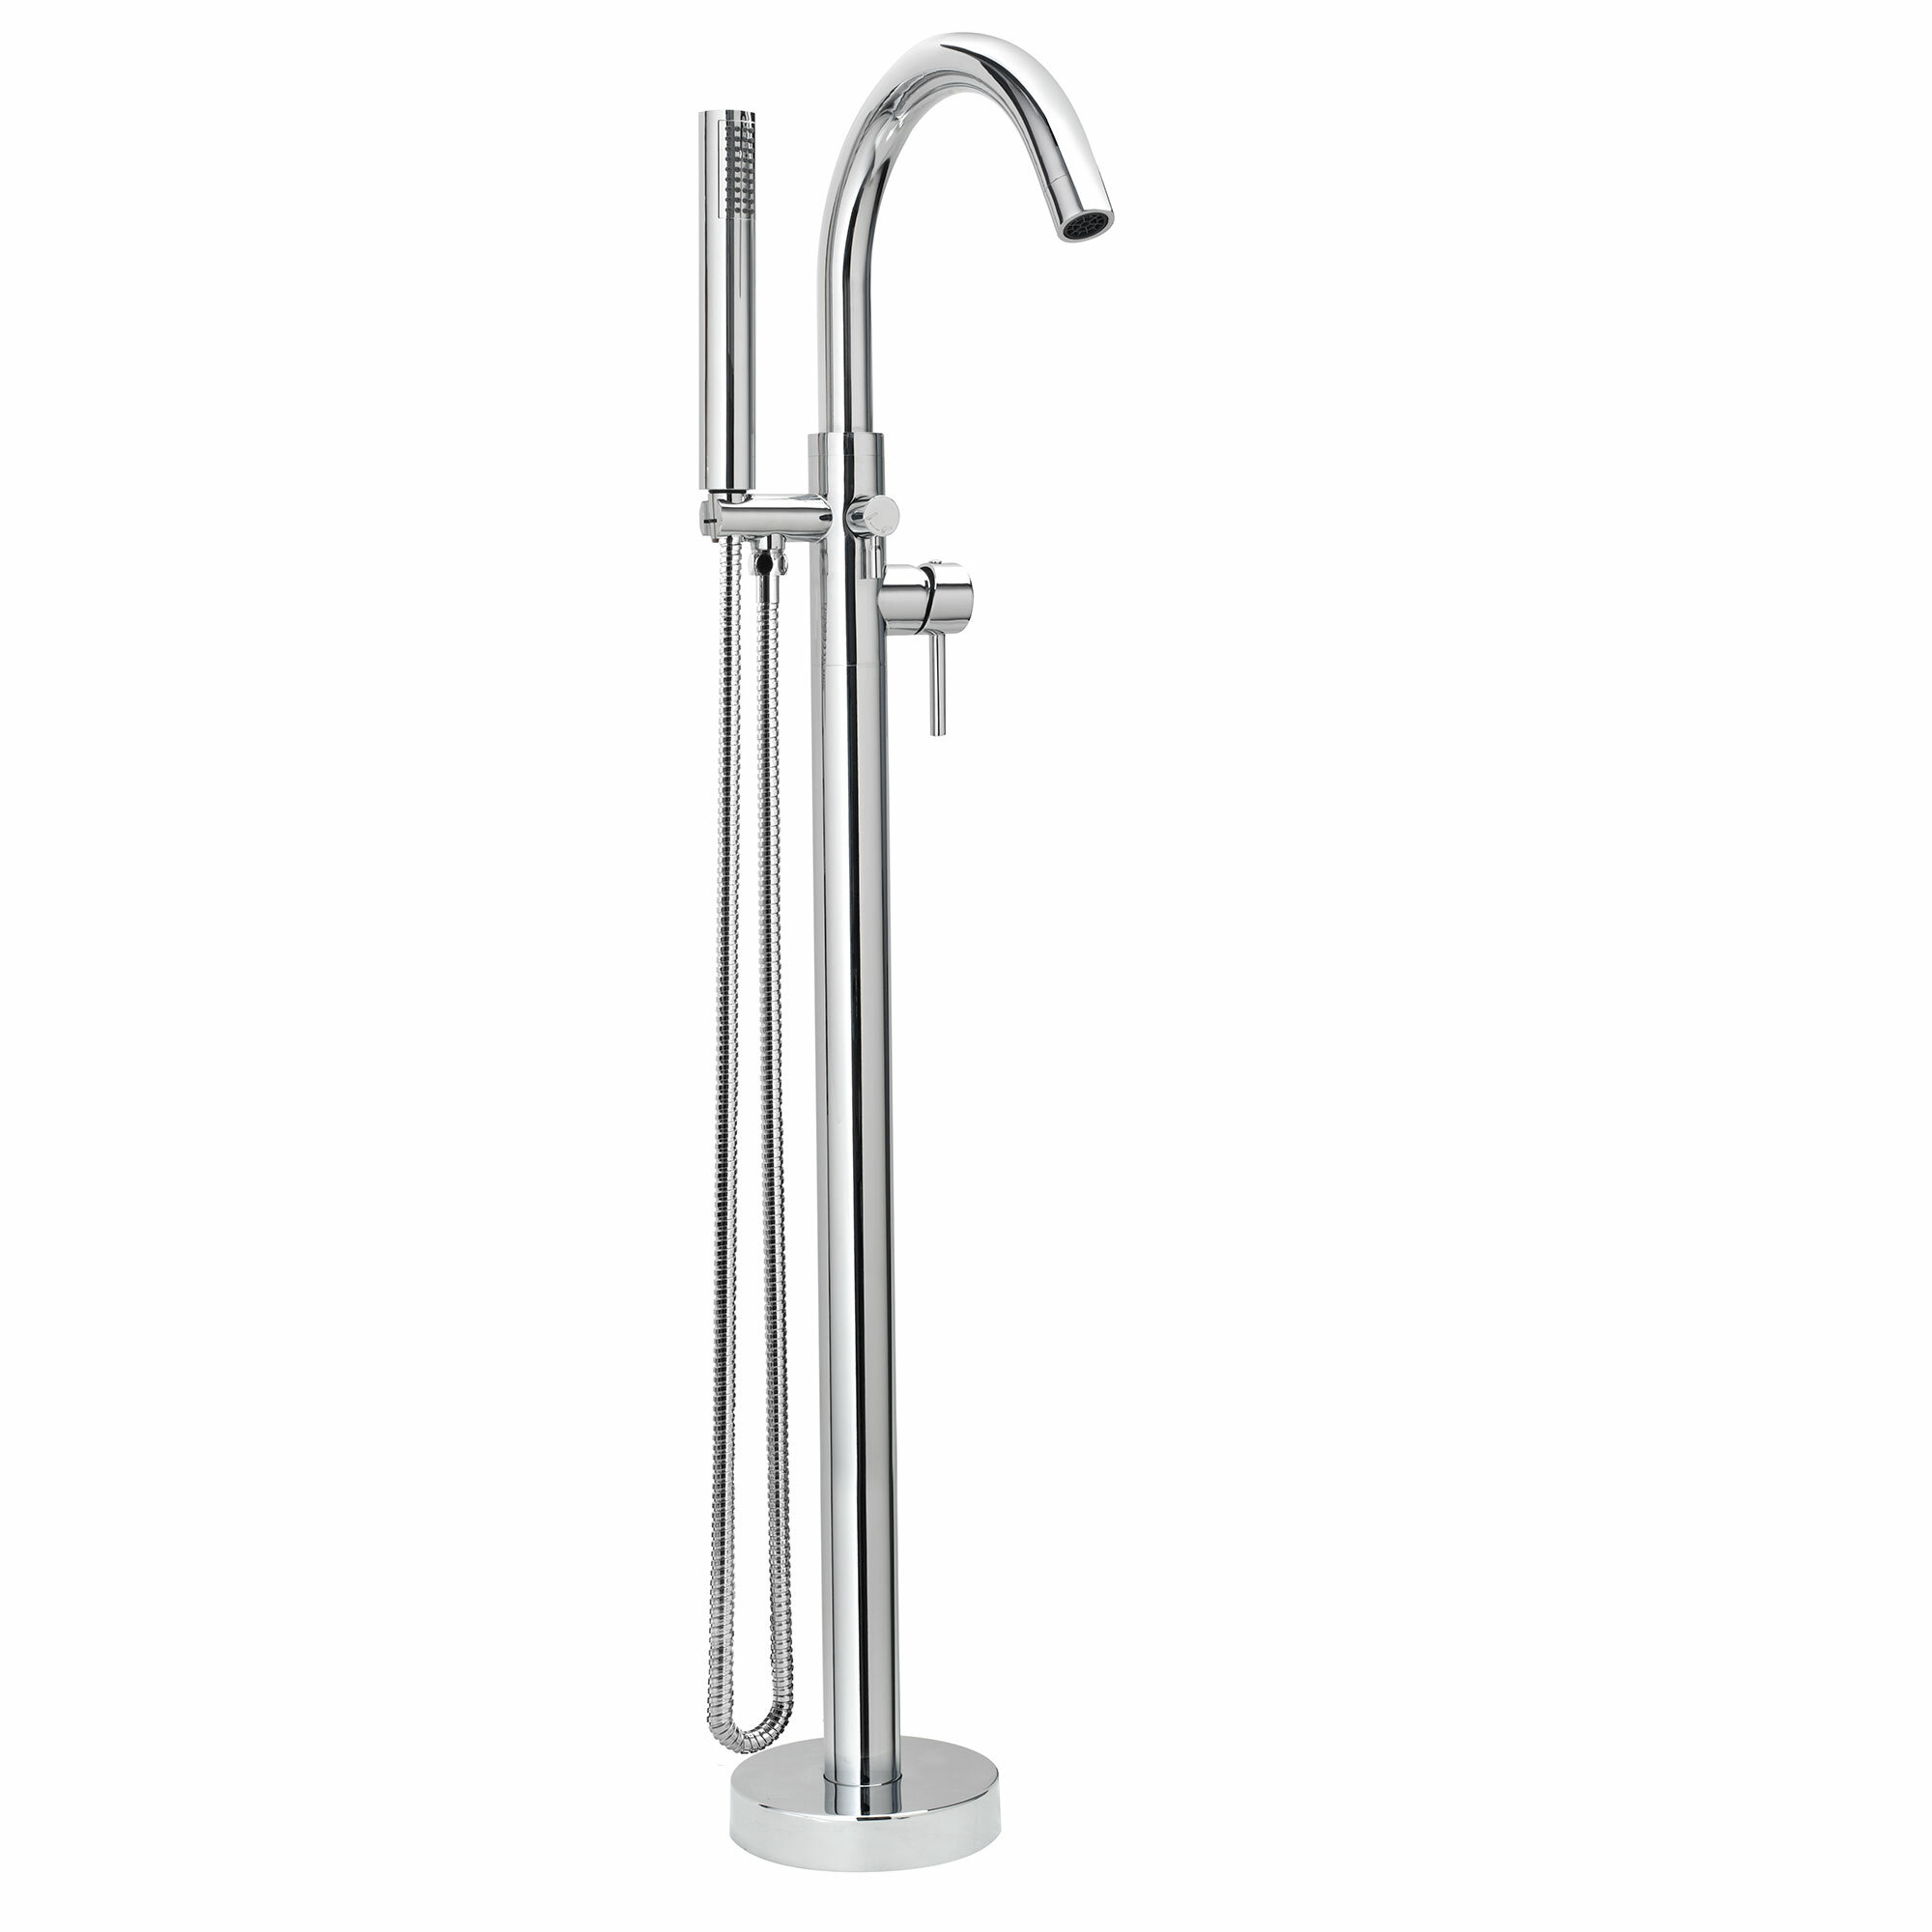 products delta valve cross tub filler mount stainless traditional faucet handle steel mounted and floor with metal hand finish includes shower spray